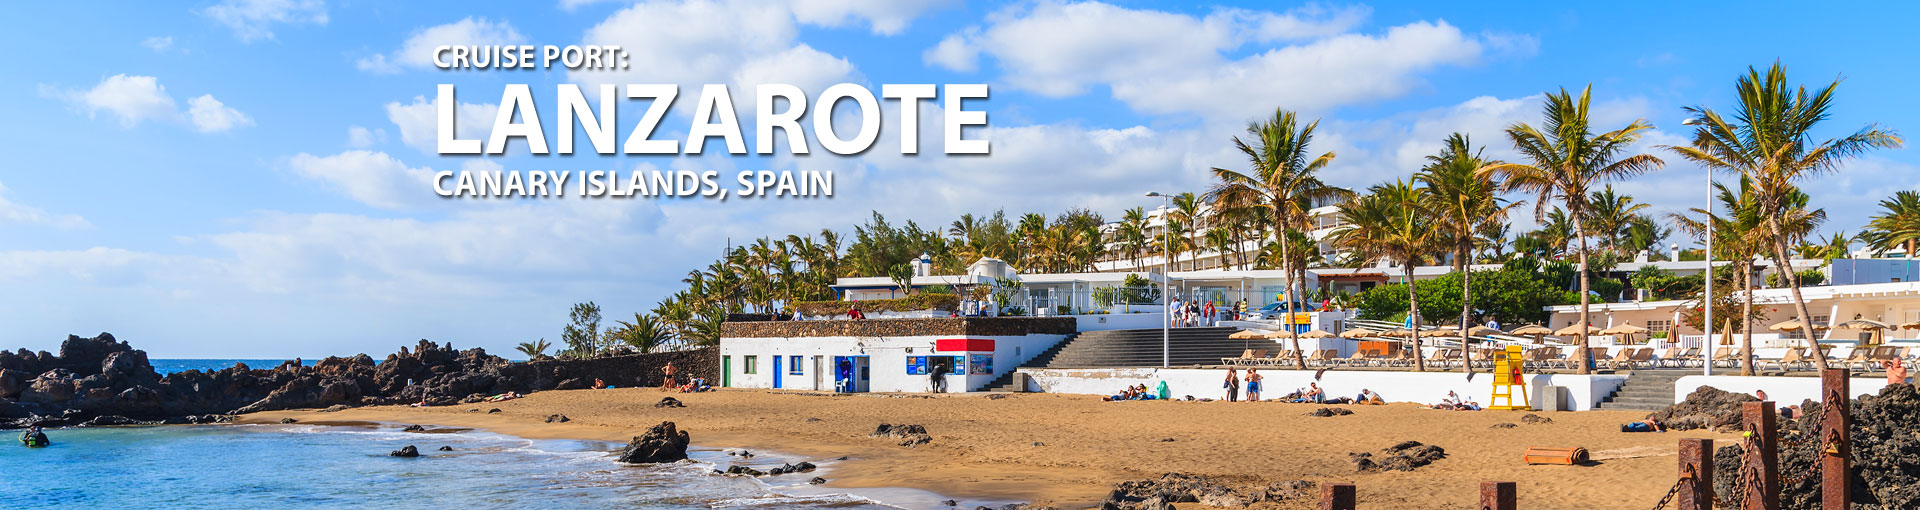 Cruises to Lanzarote, Canary Islands, Spain